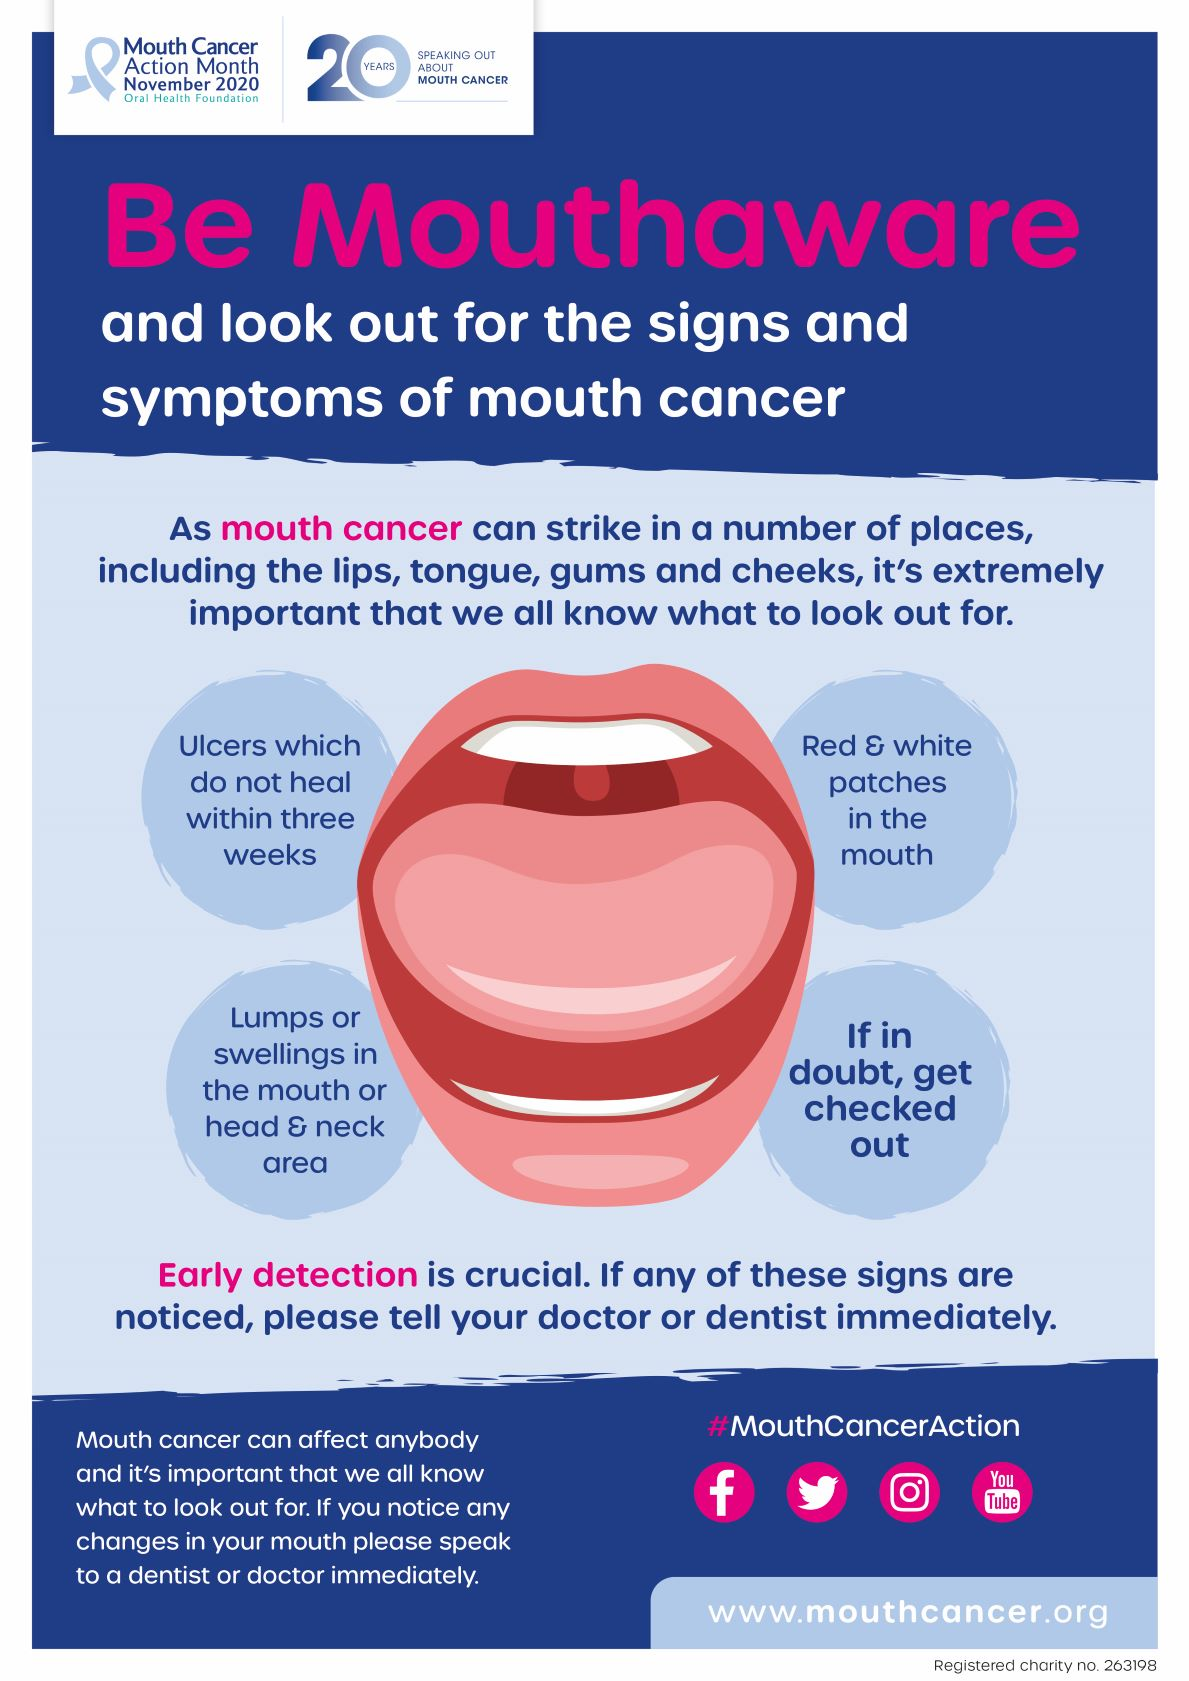 BE MOUTHAWARE!